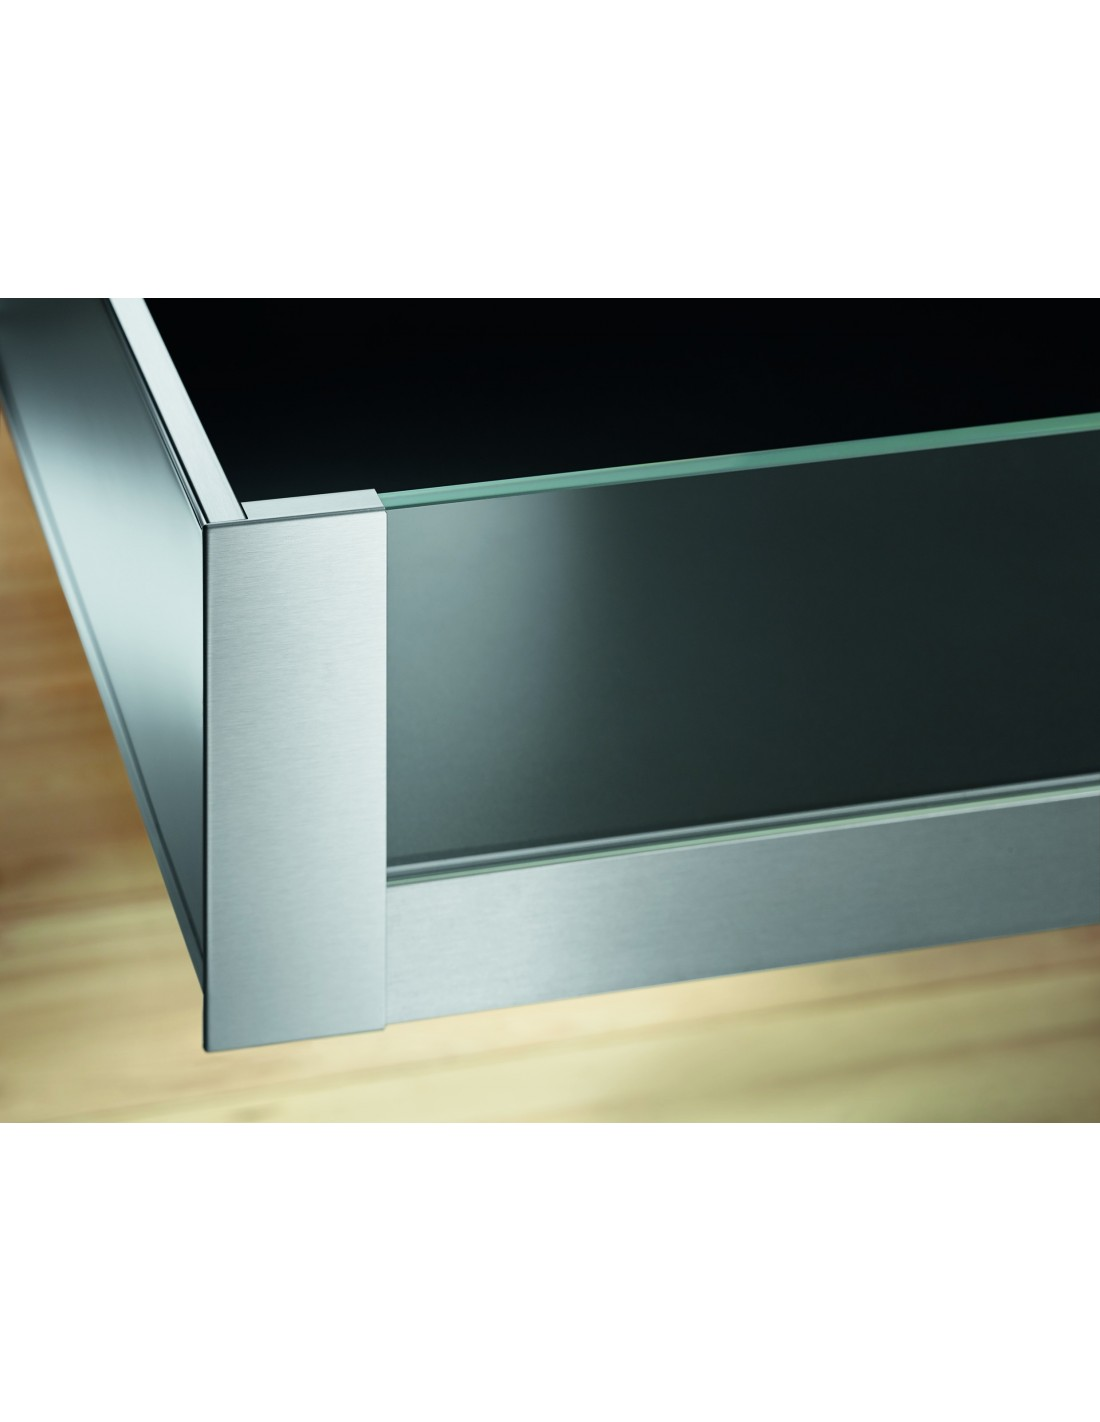 600mm Wide Blum Legrabox Free Space Tower Internal Drawers Depth ...